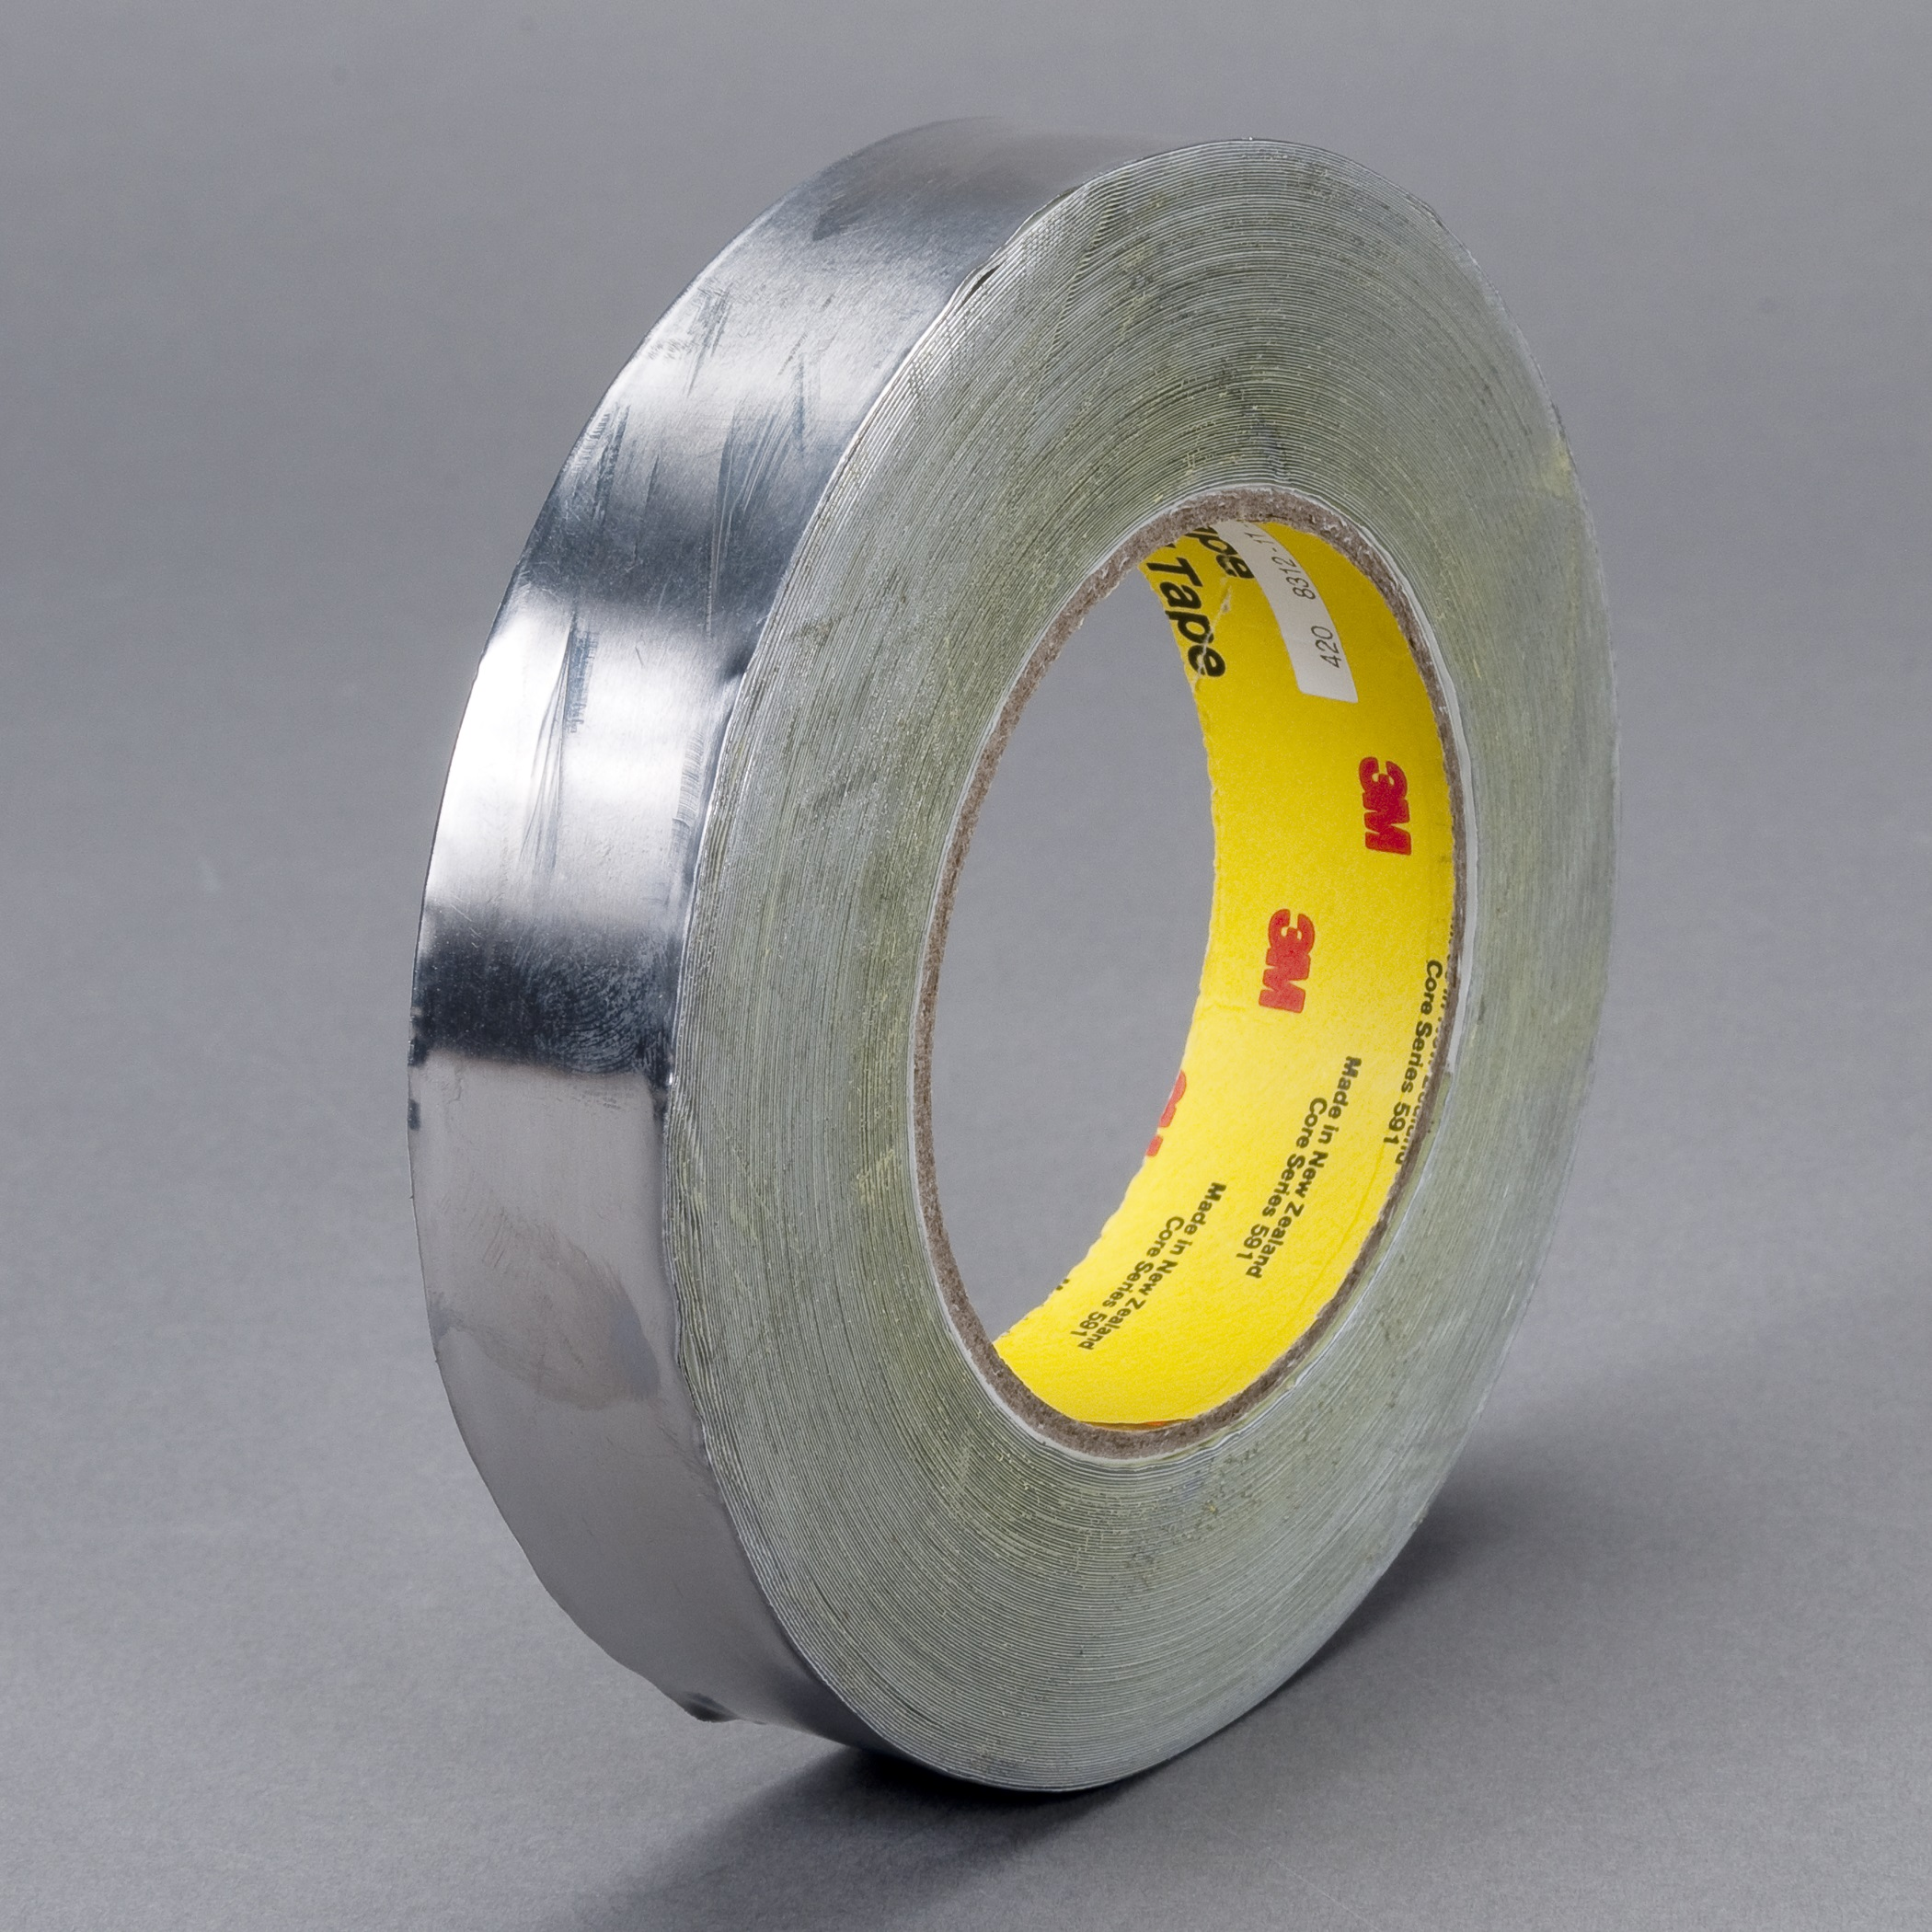 3m 420 Lead Foil Tape 1in x 36yd